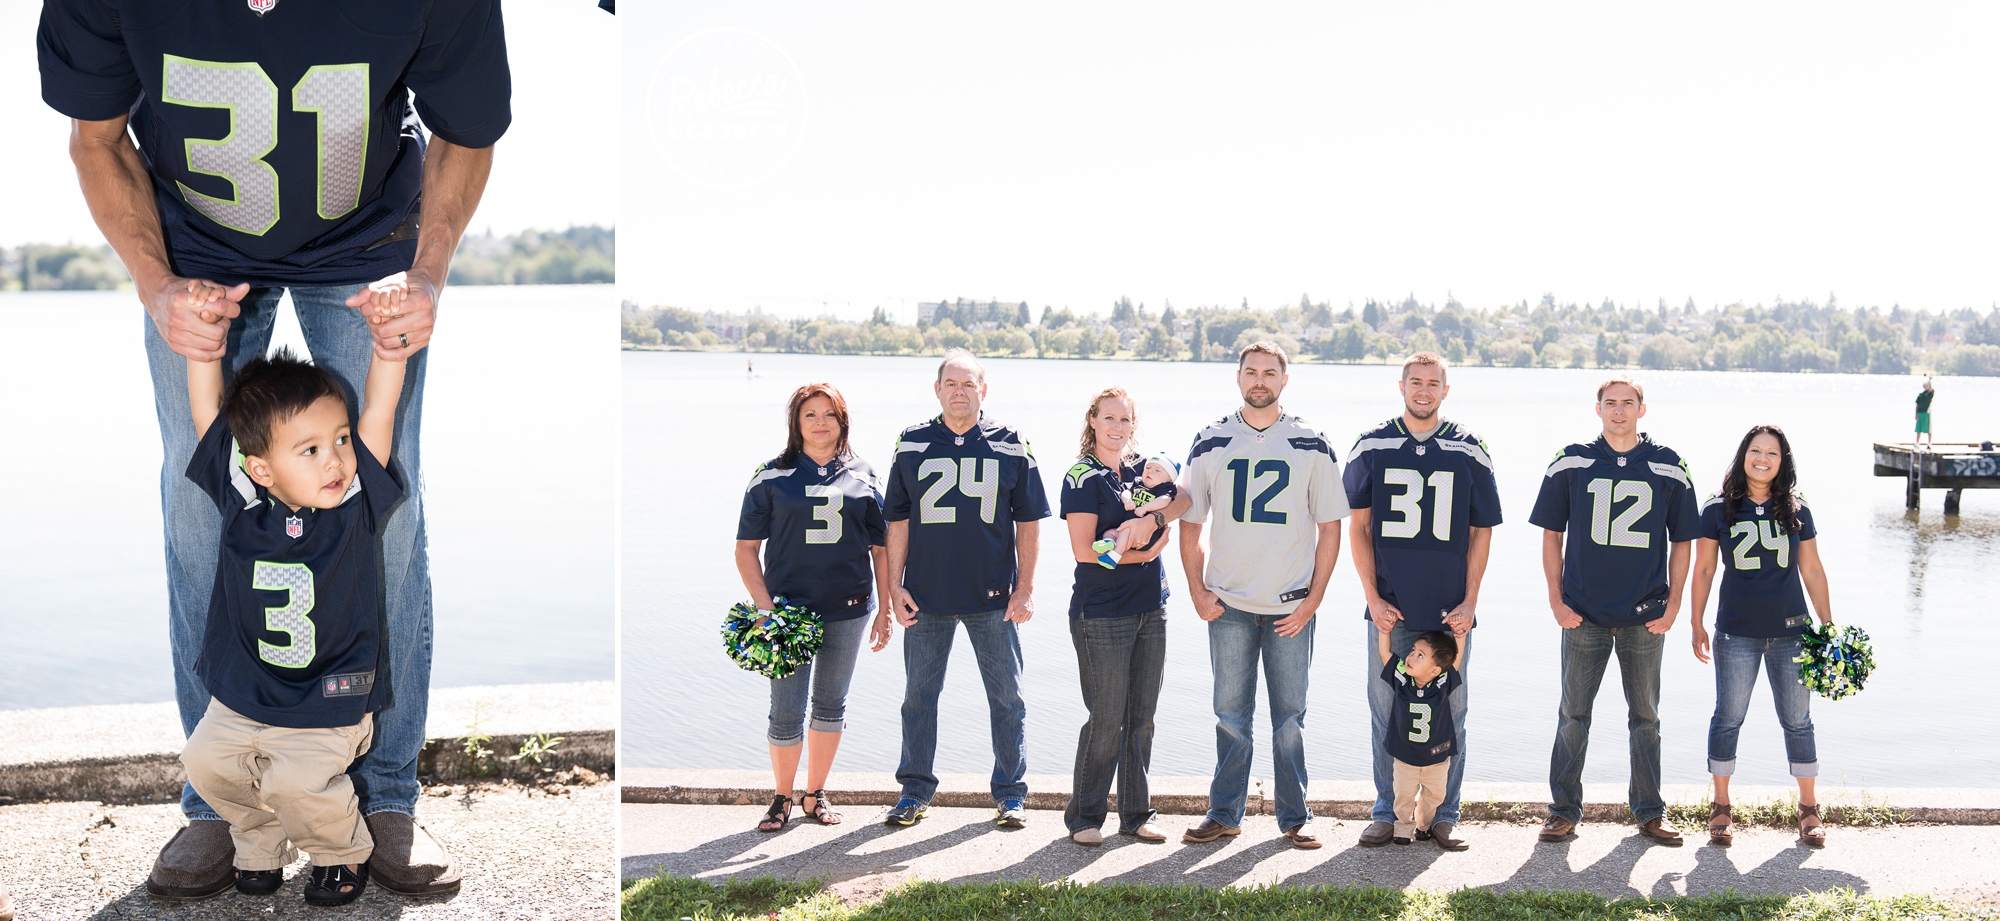 12th man portraits a Seattle family shows their Seahawks tem spirit during extended famile portraits photographed by Rebecca Ellison Photography